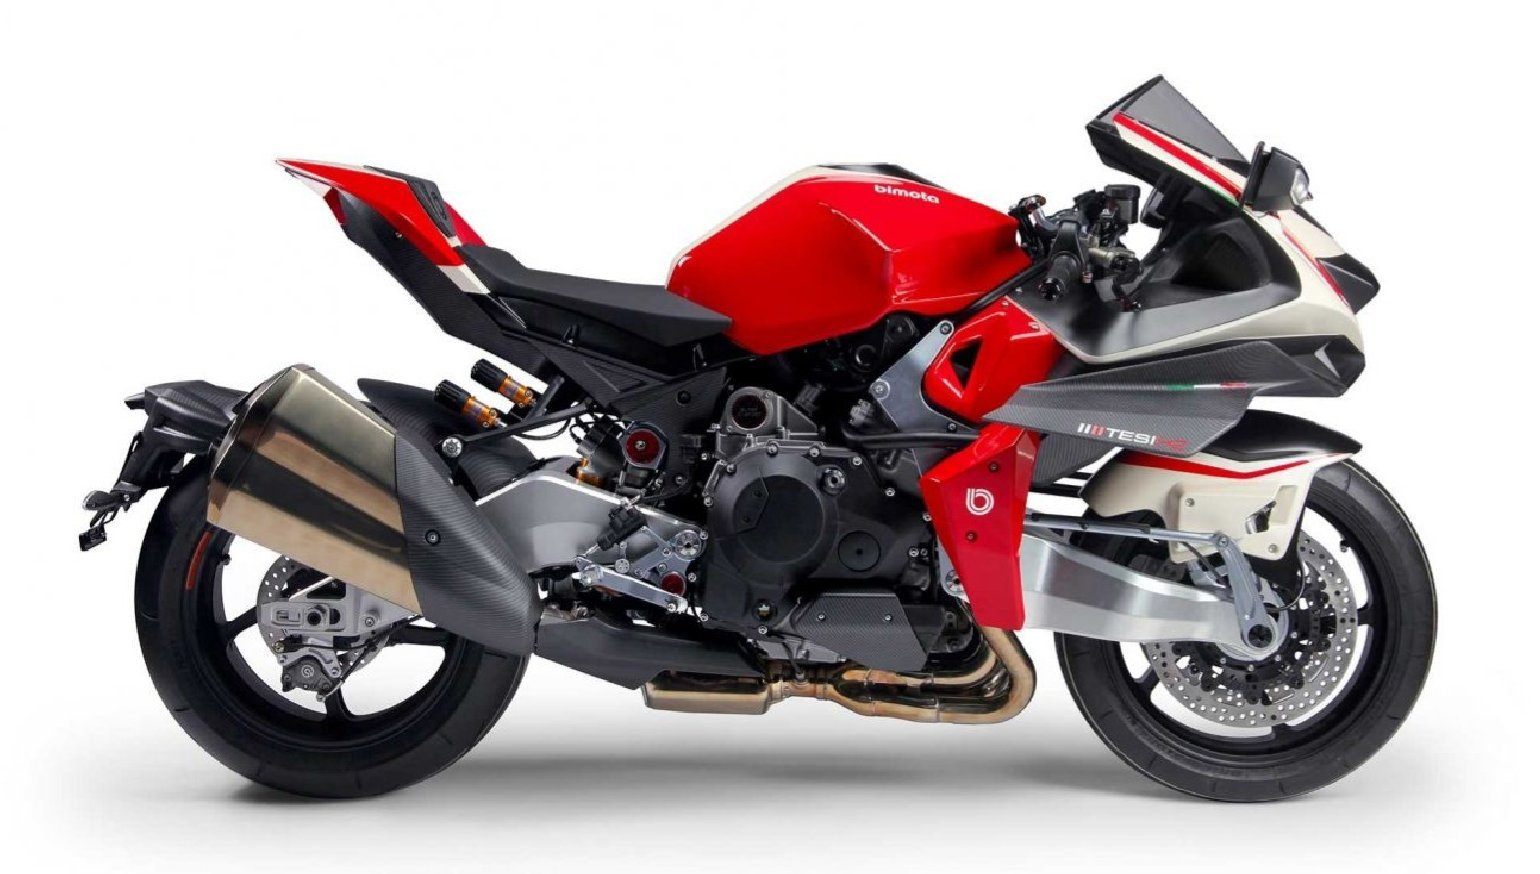 Unveiled at EICMA: What do you get if you cross a Kawasaki and a Bimota?